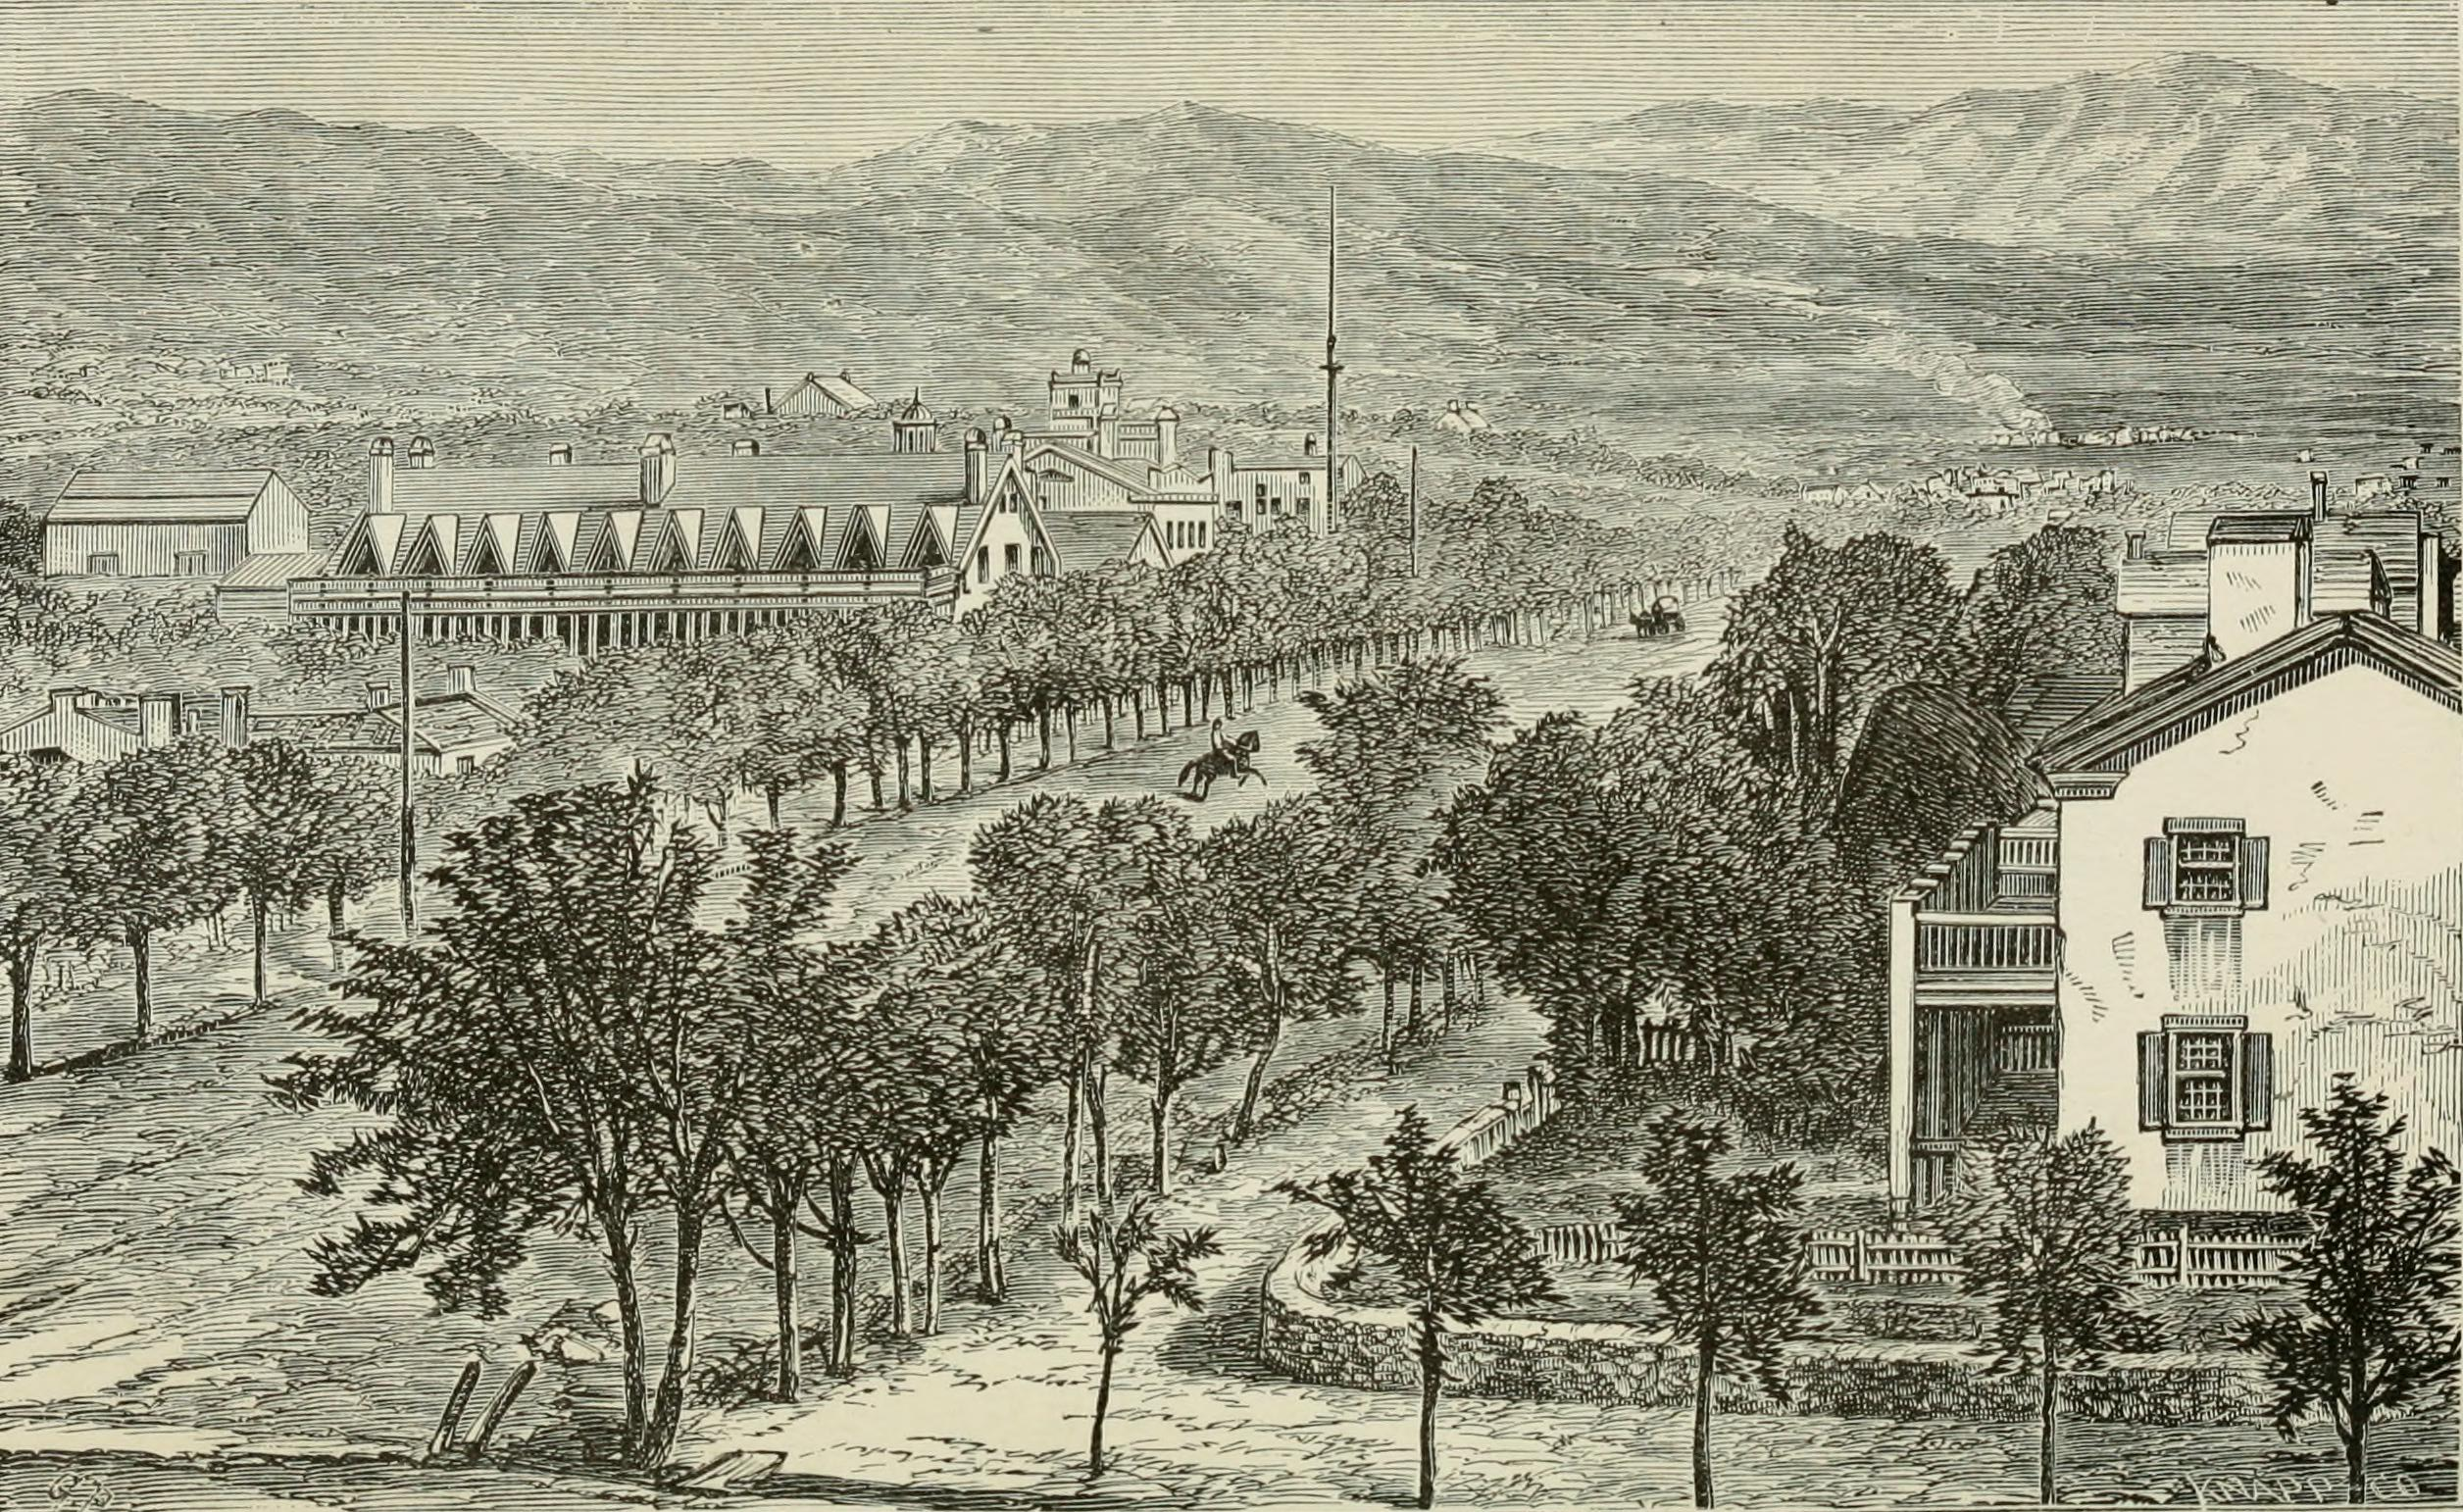 Image from page of The Southern states